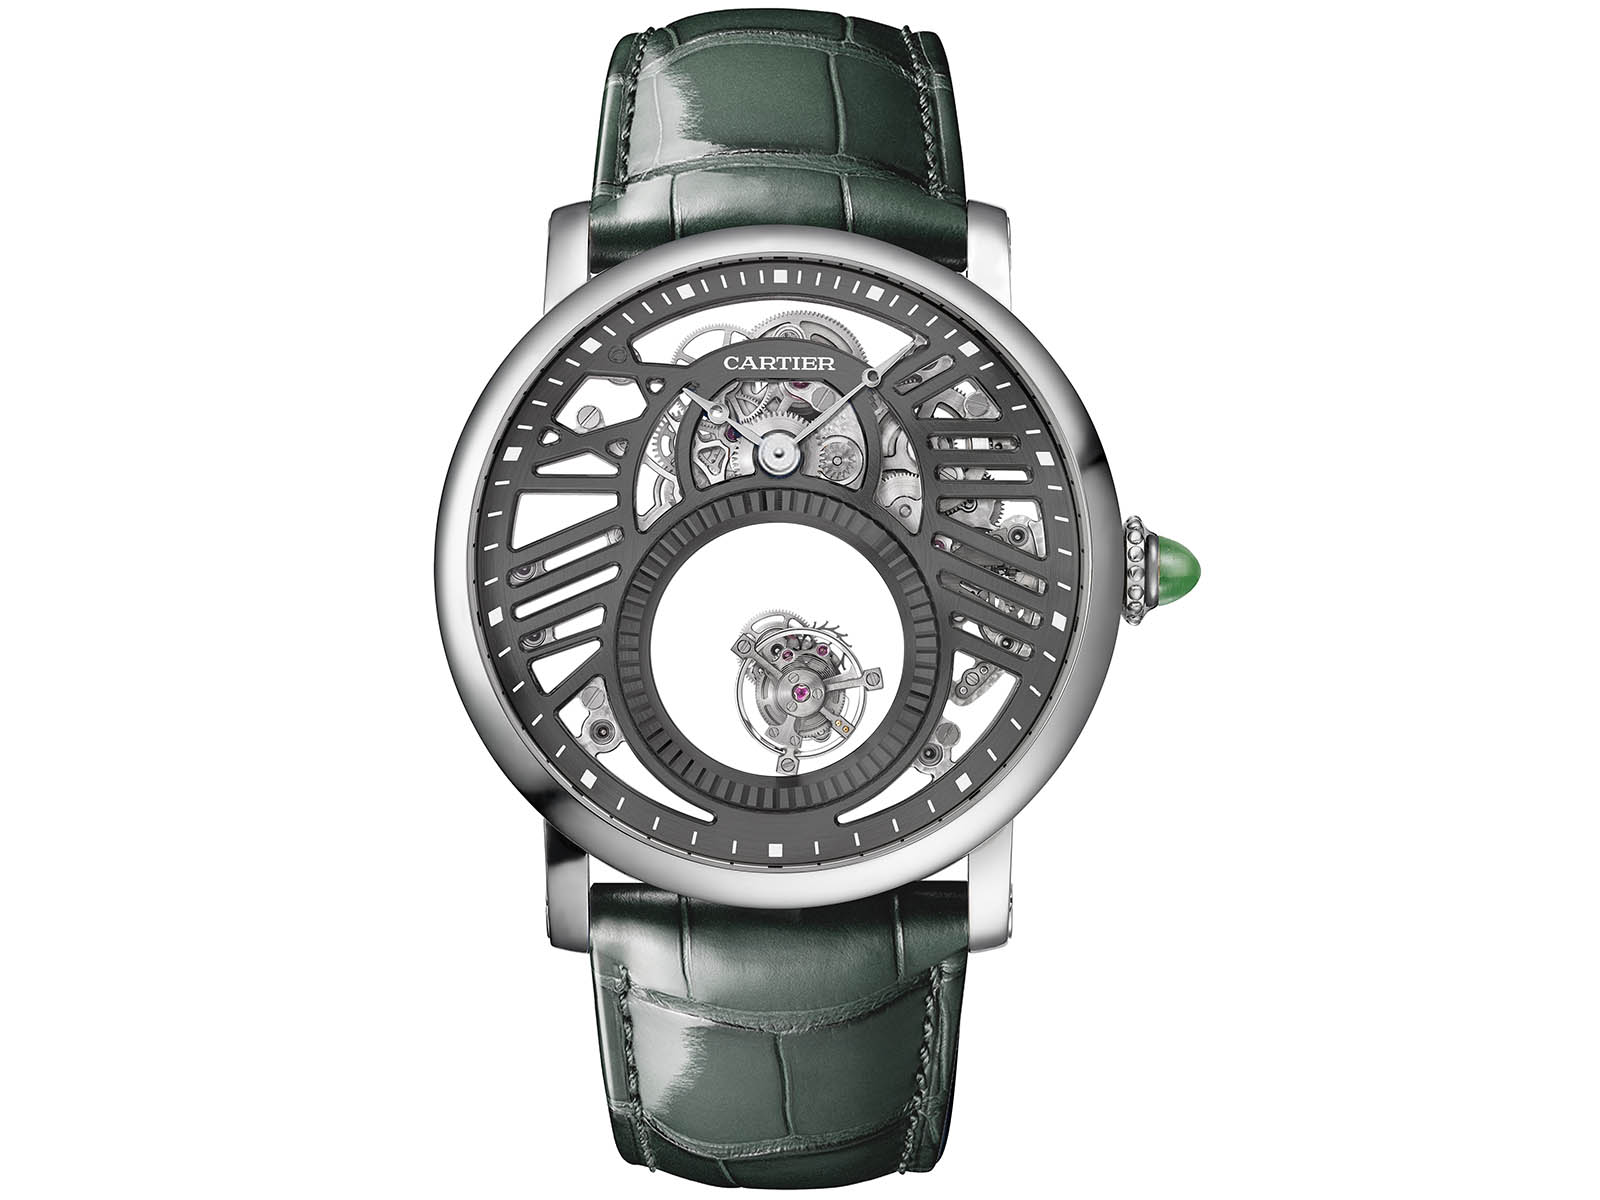 whro0074-cartier-rotonde-de-cartier-skeleton-mysterious-double-tourbillon-watch-1.jpg